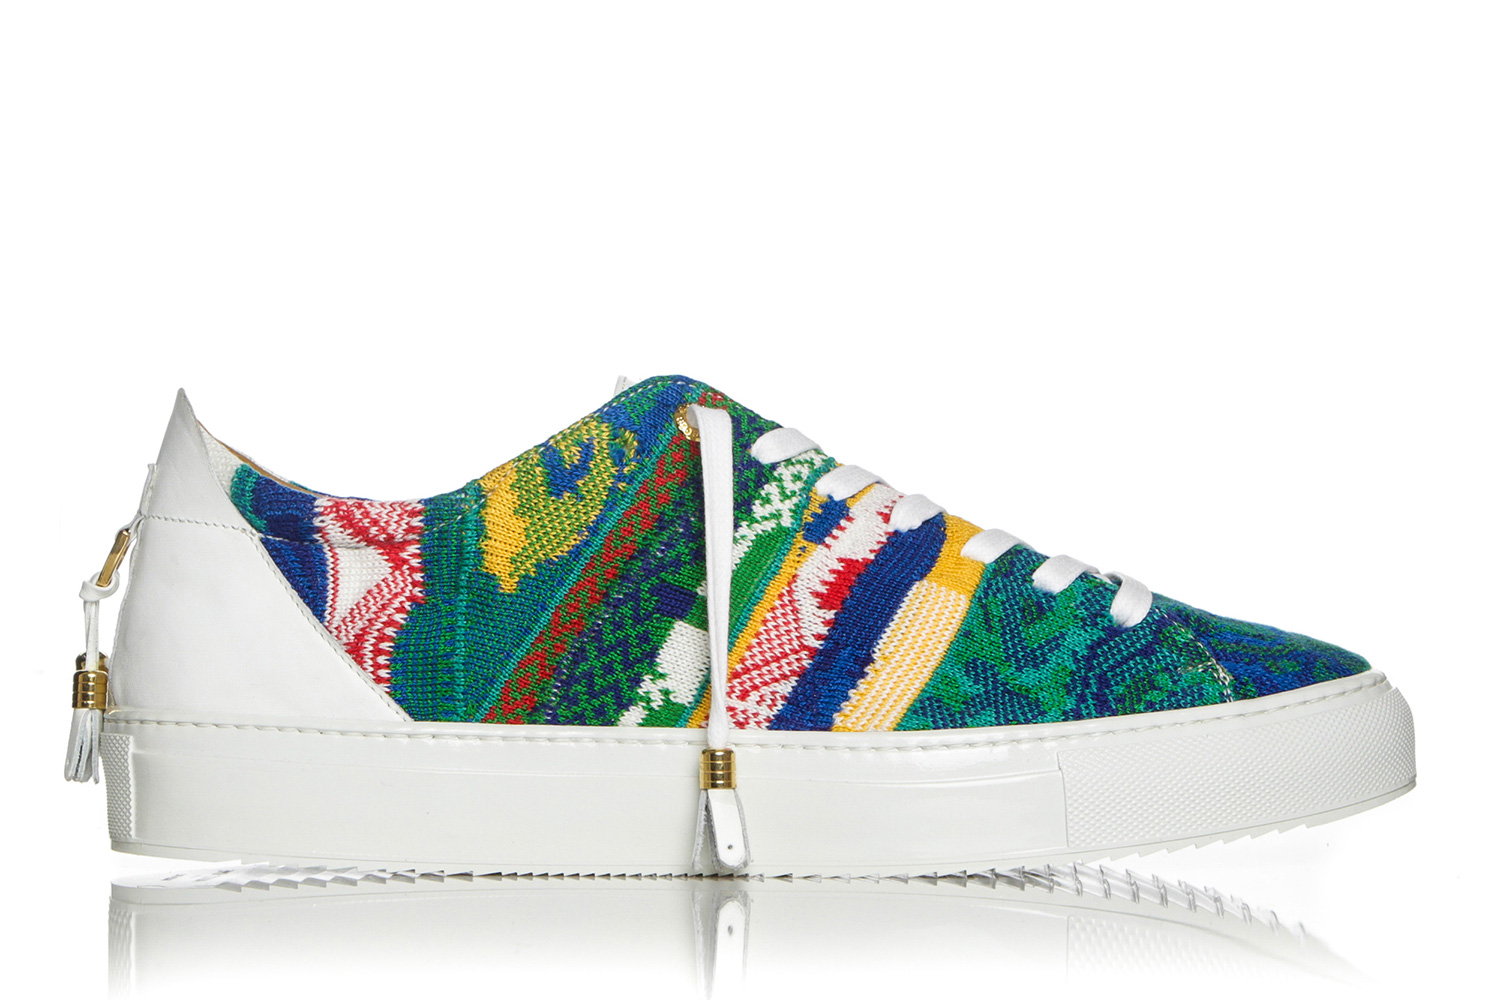 coogi-android-homme-sneaker-collaboration-06[1][1].jpg